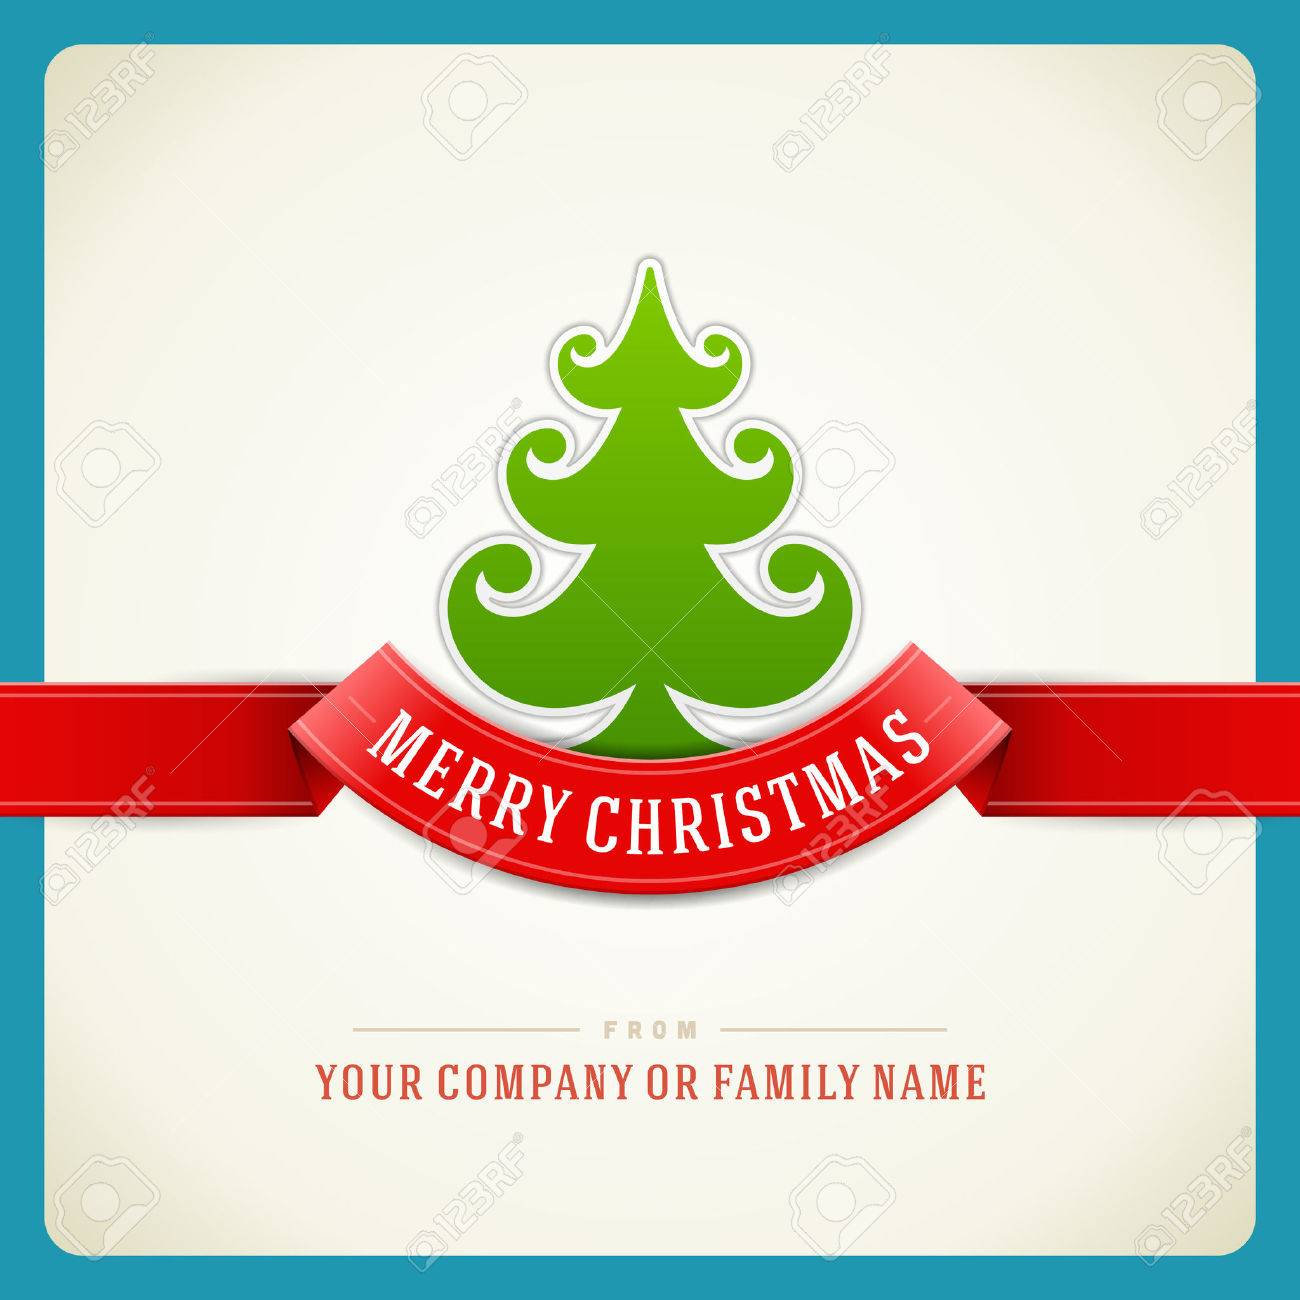 Christmas green tree and star background  Vector illustration Eps 10 Stock Vector - 23701658